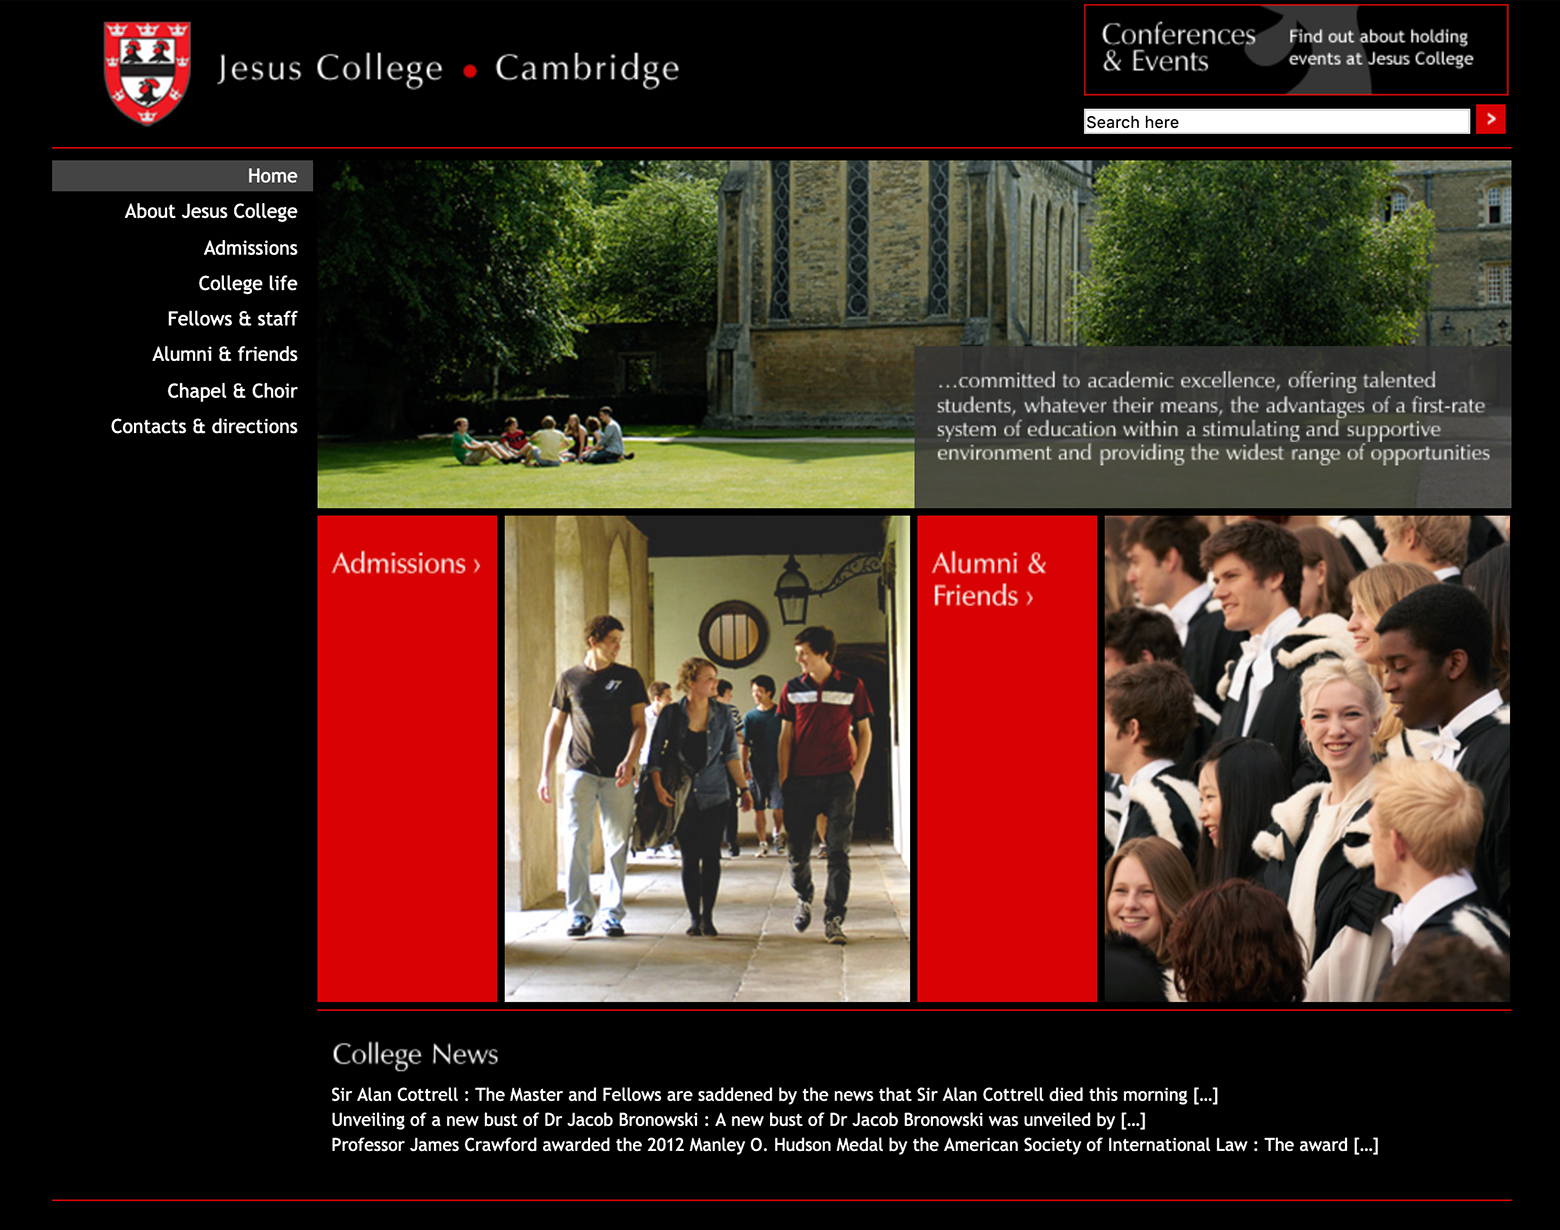 Jesus College conferences home